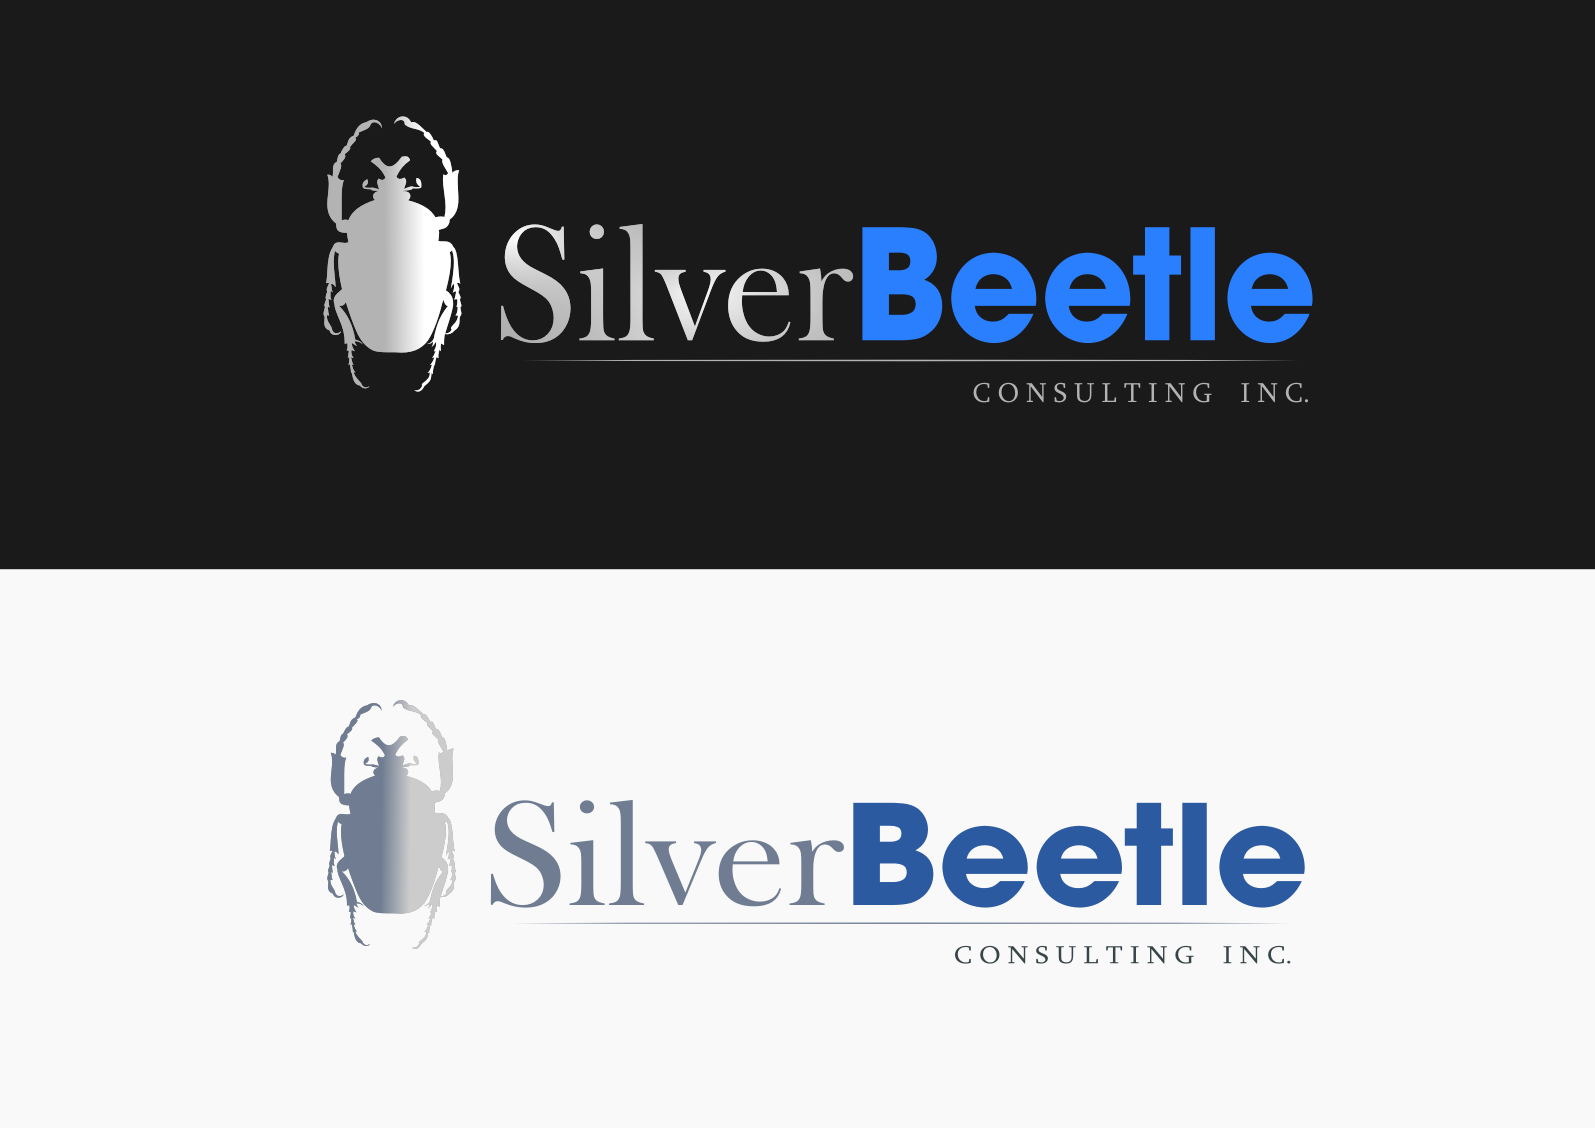 Logo Design by whoosef - Entry No. 95 in the Logo Design Contest Silver Beetle Consulting Inc. Logo Design.